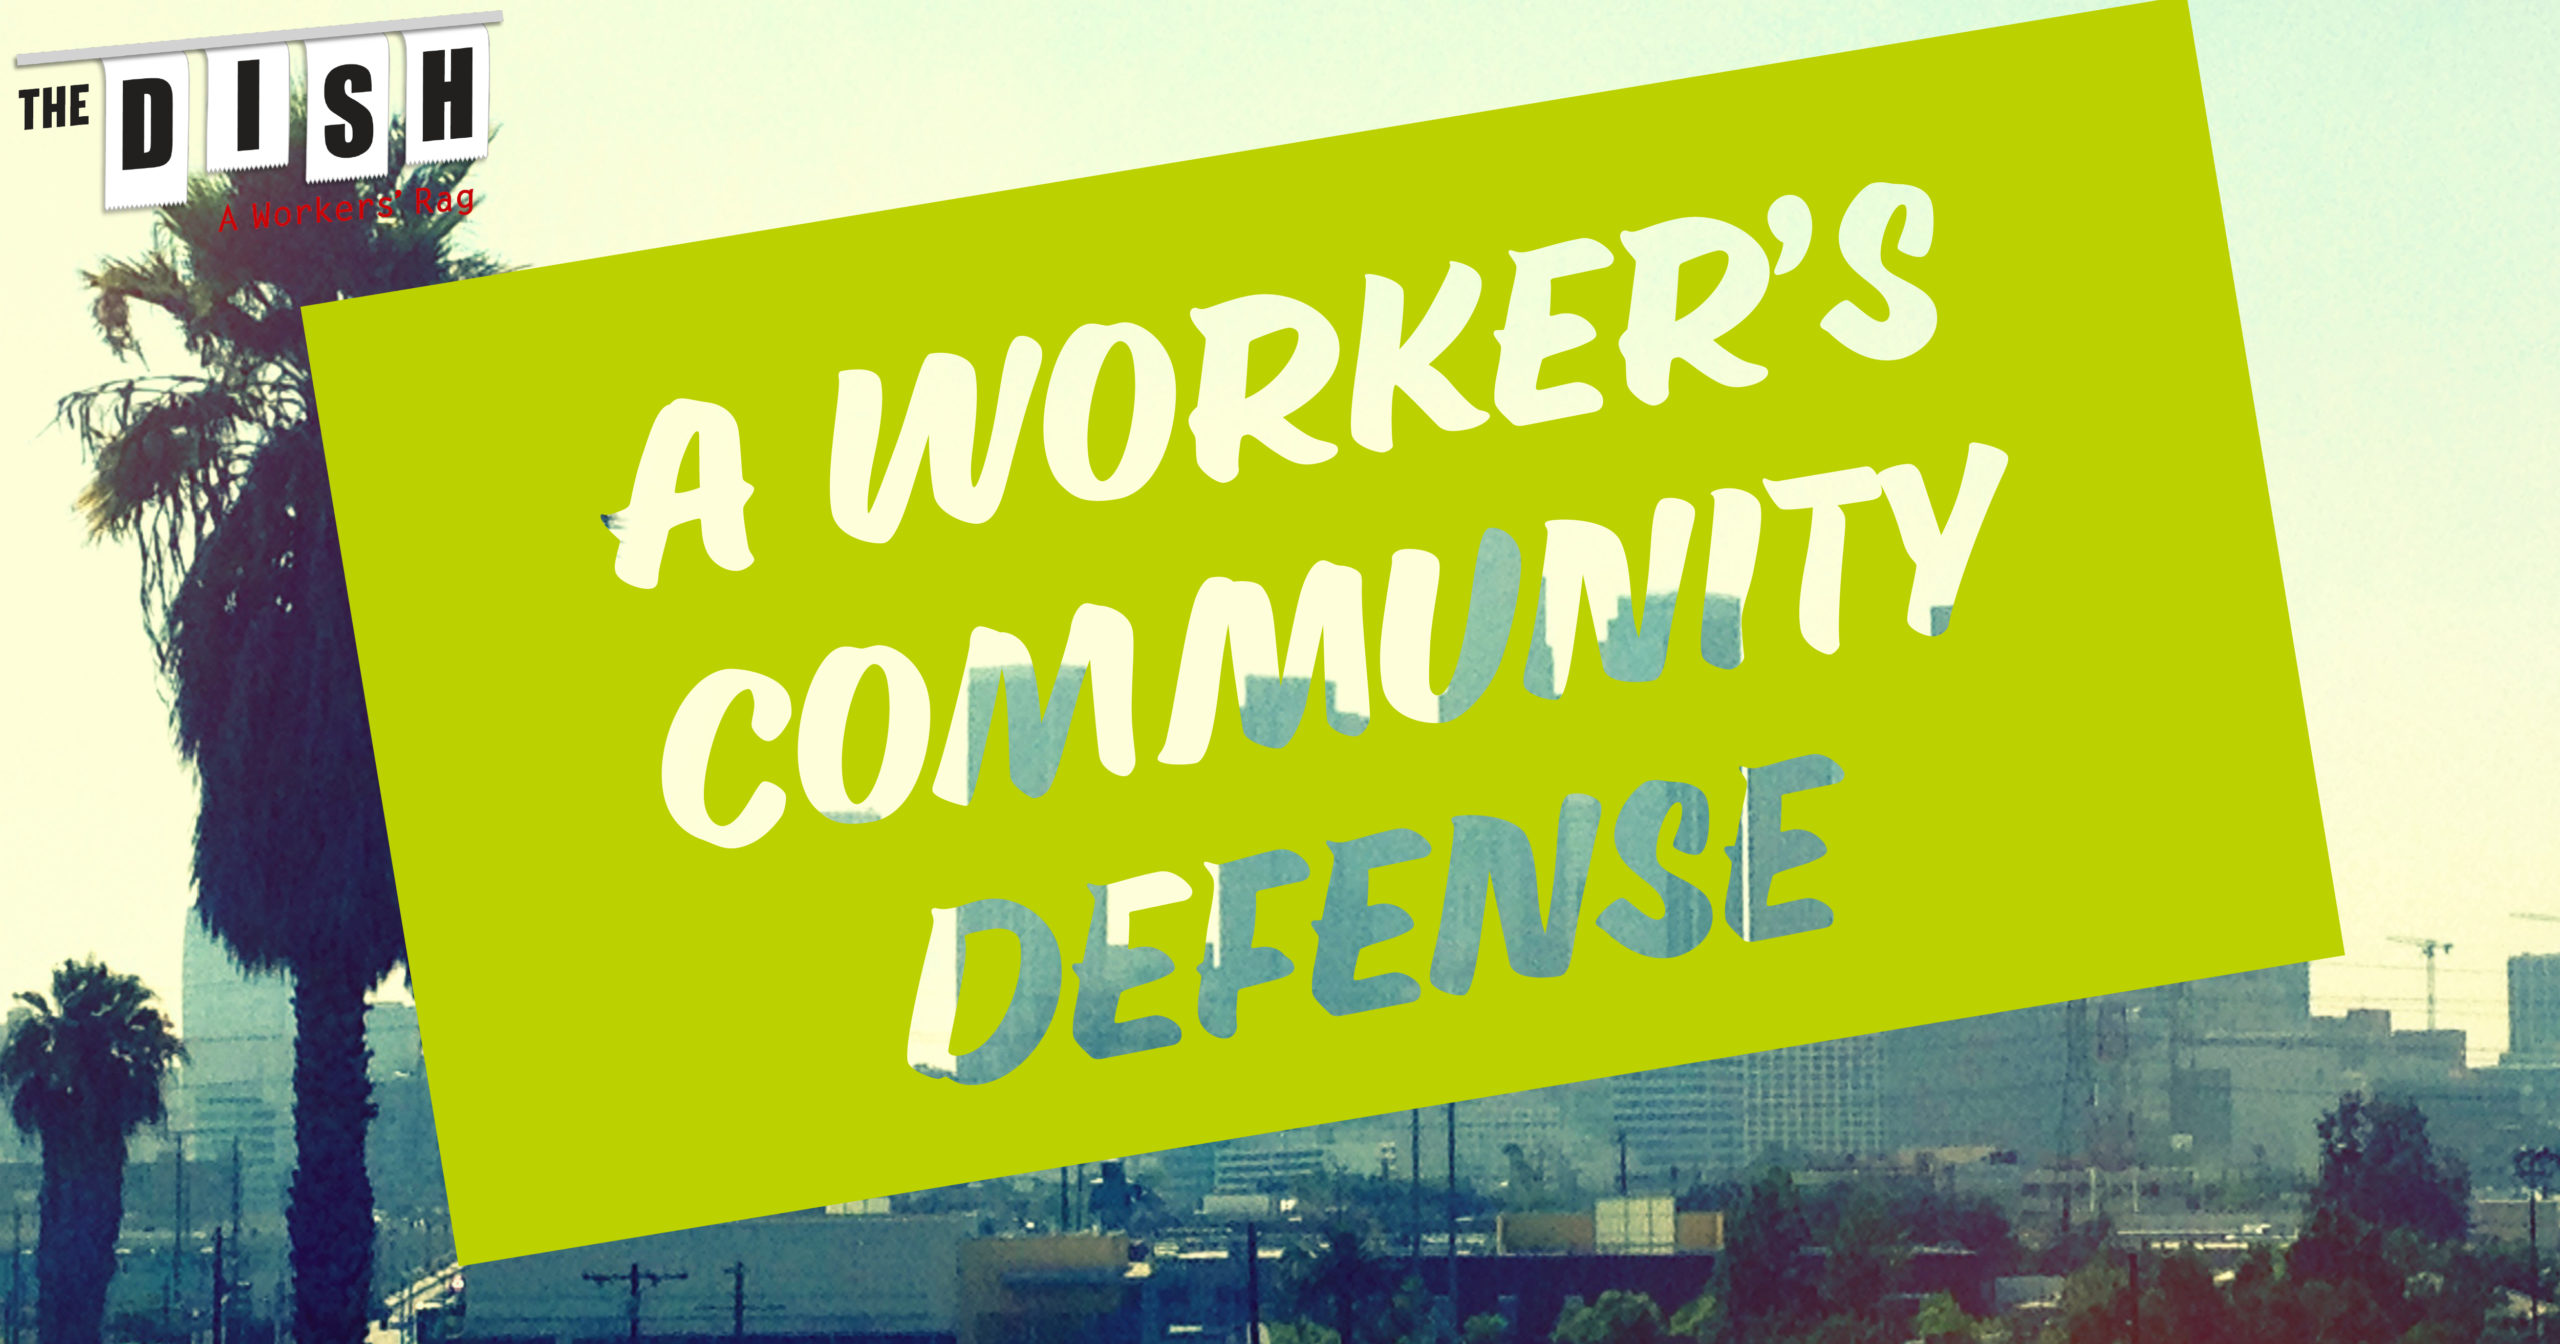 """A photo of the Los Angeles skyline and palm trees with graphic text that reads """"A Worker's Community Defense"""""""